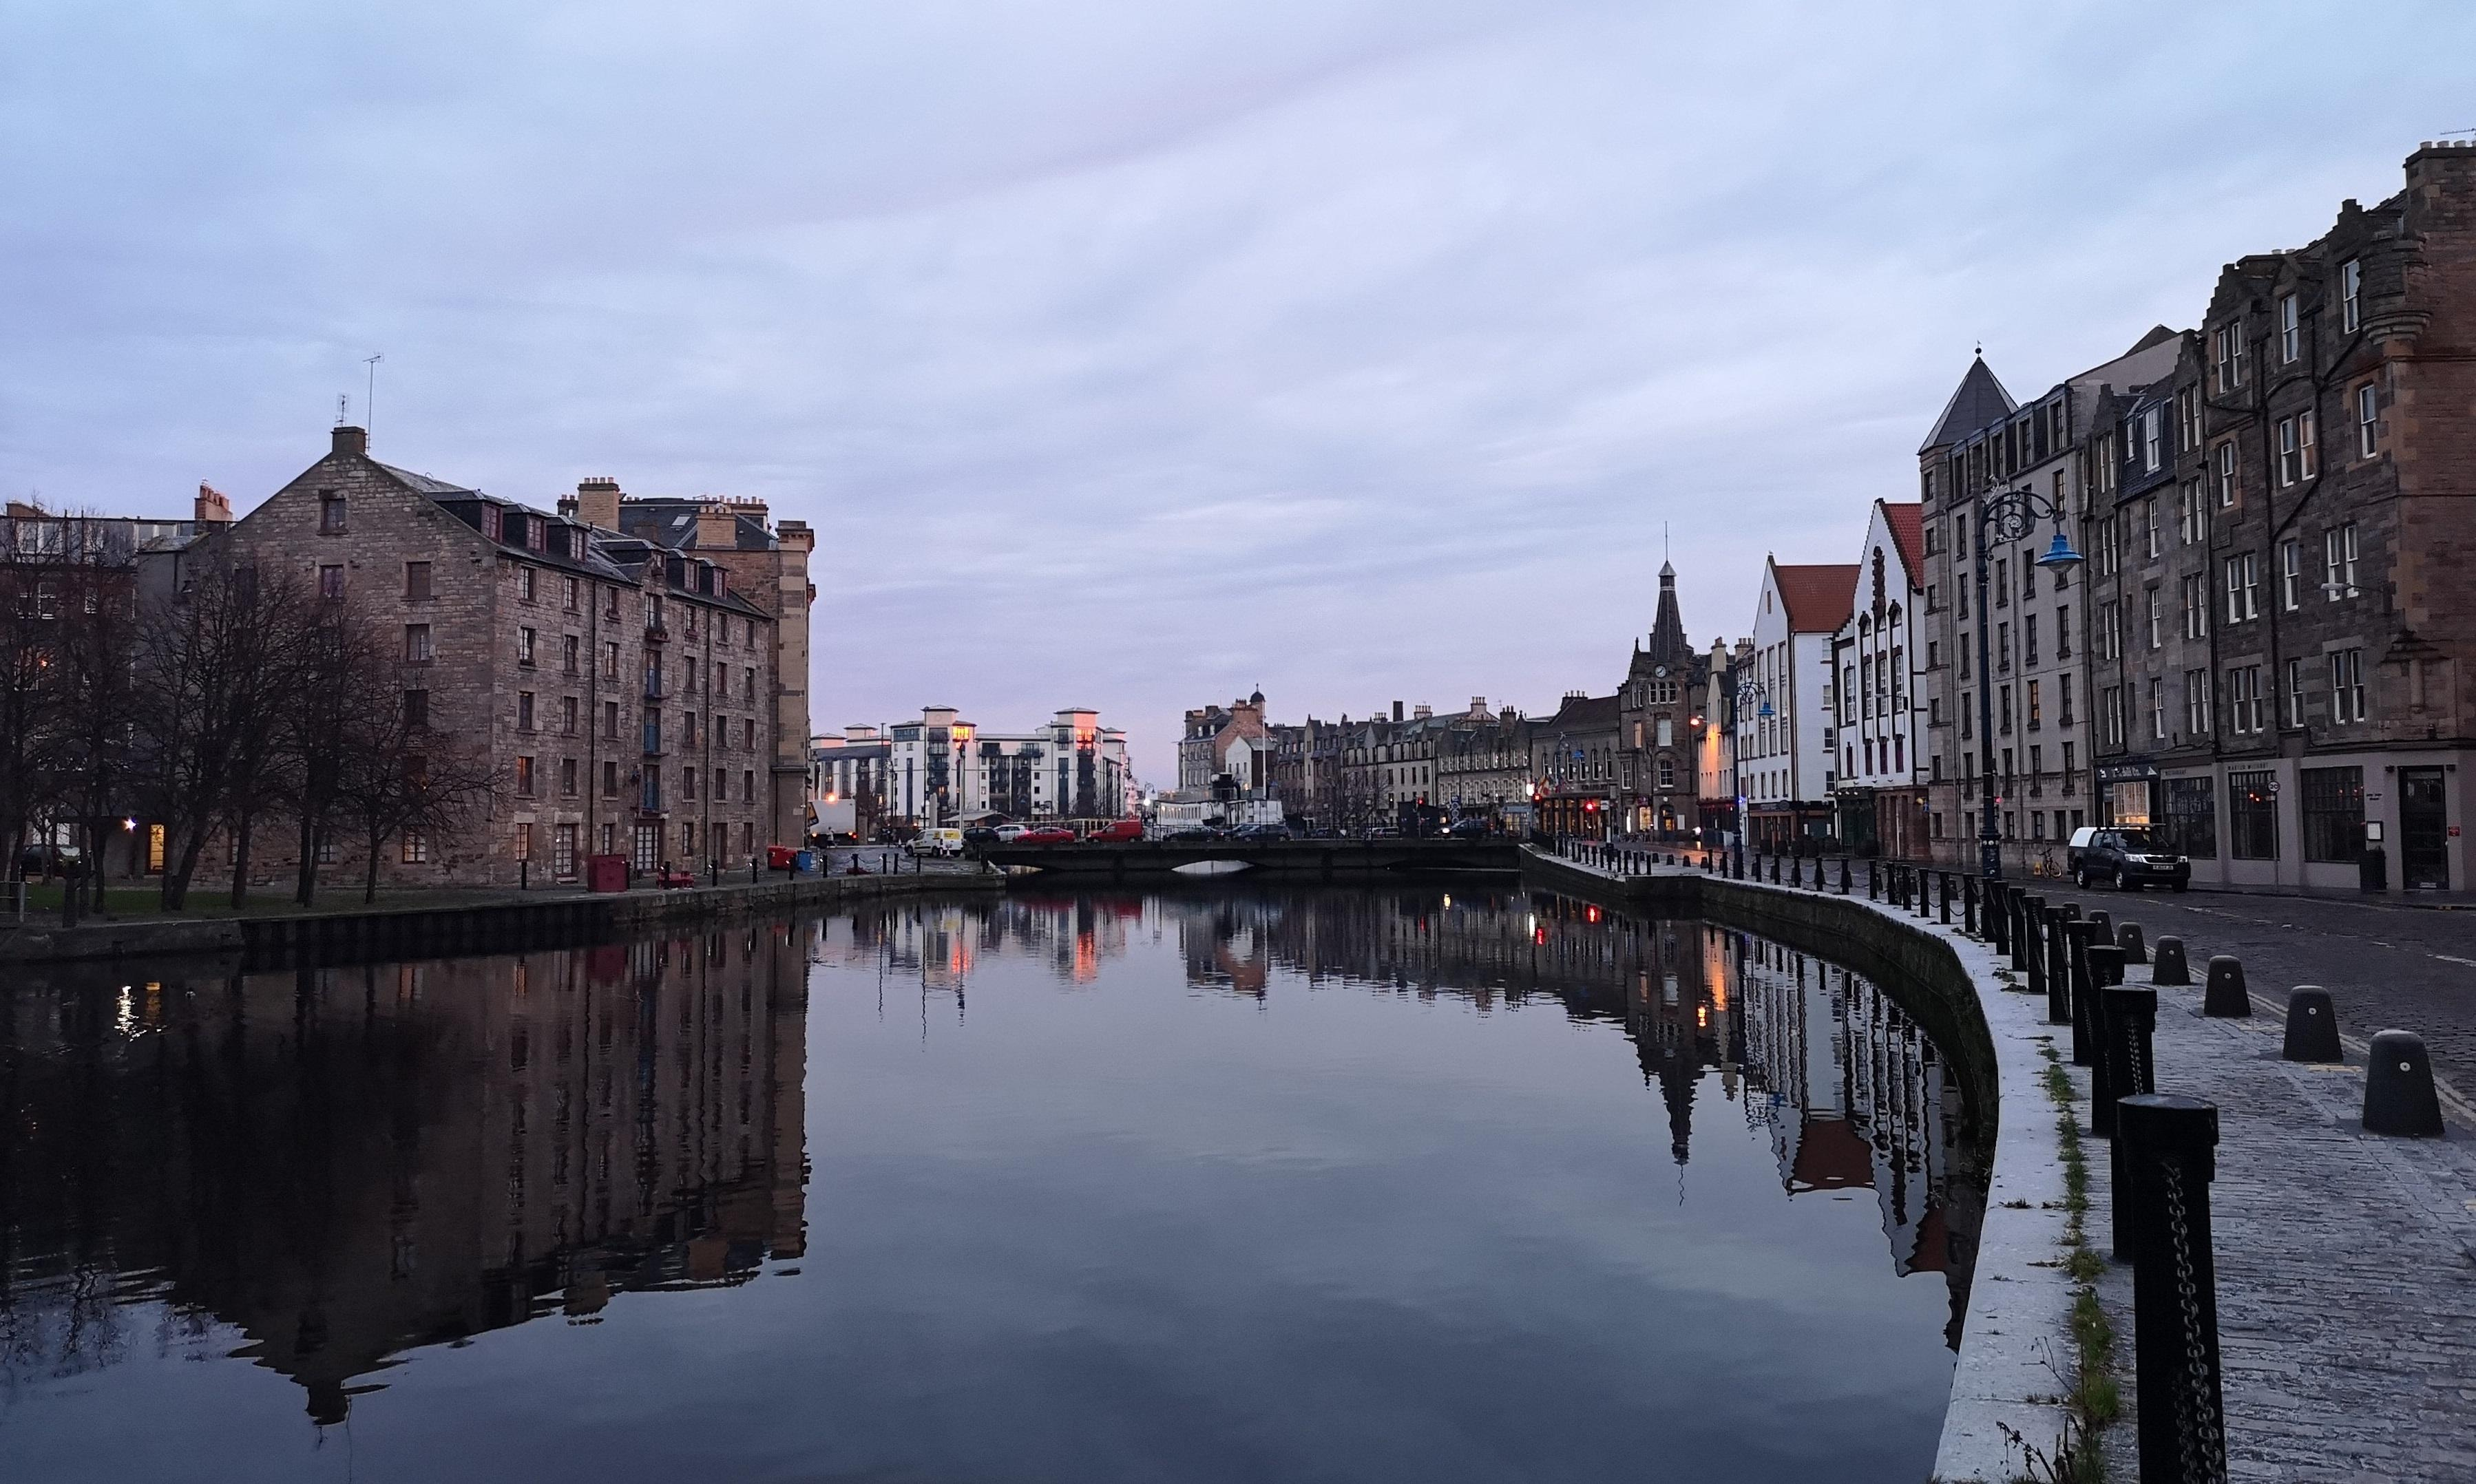 Houses in Leith next to a body of water.